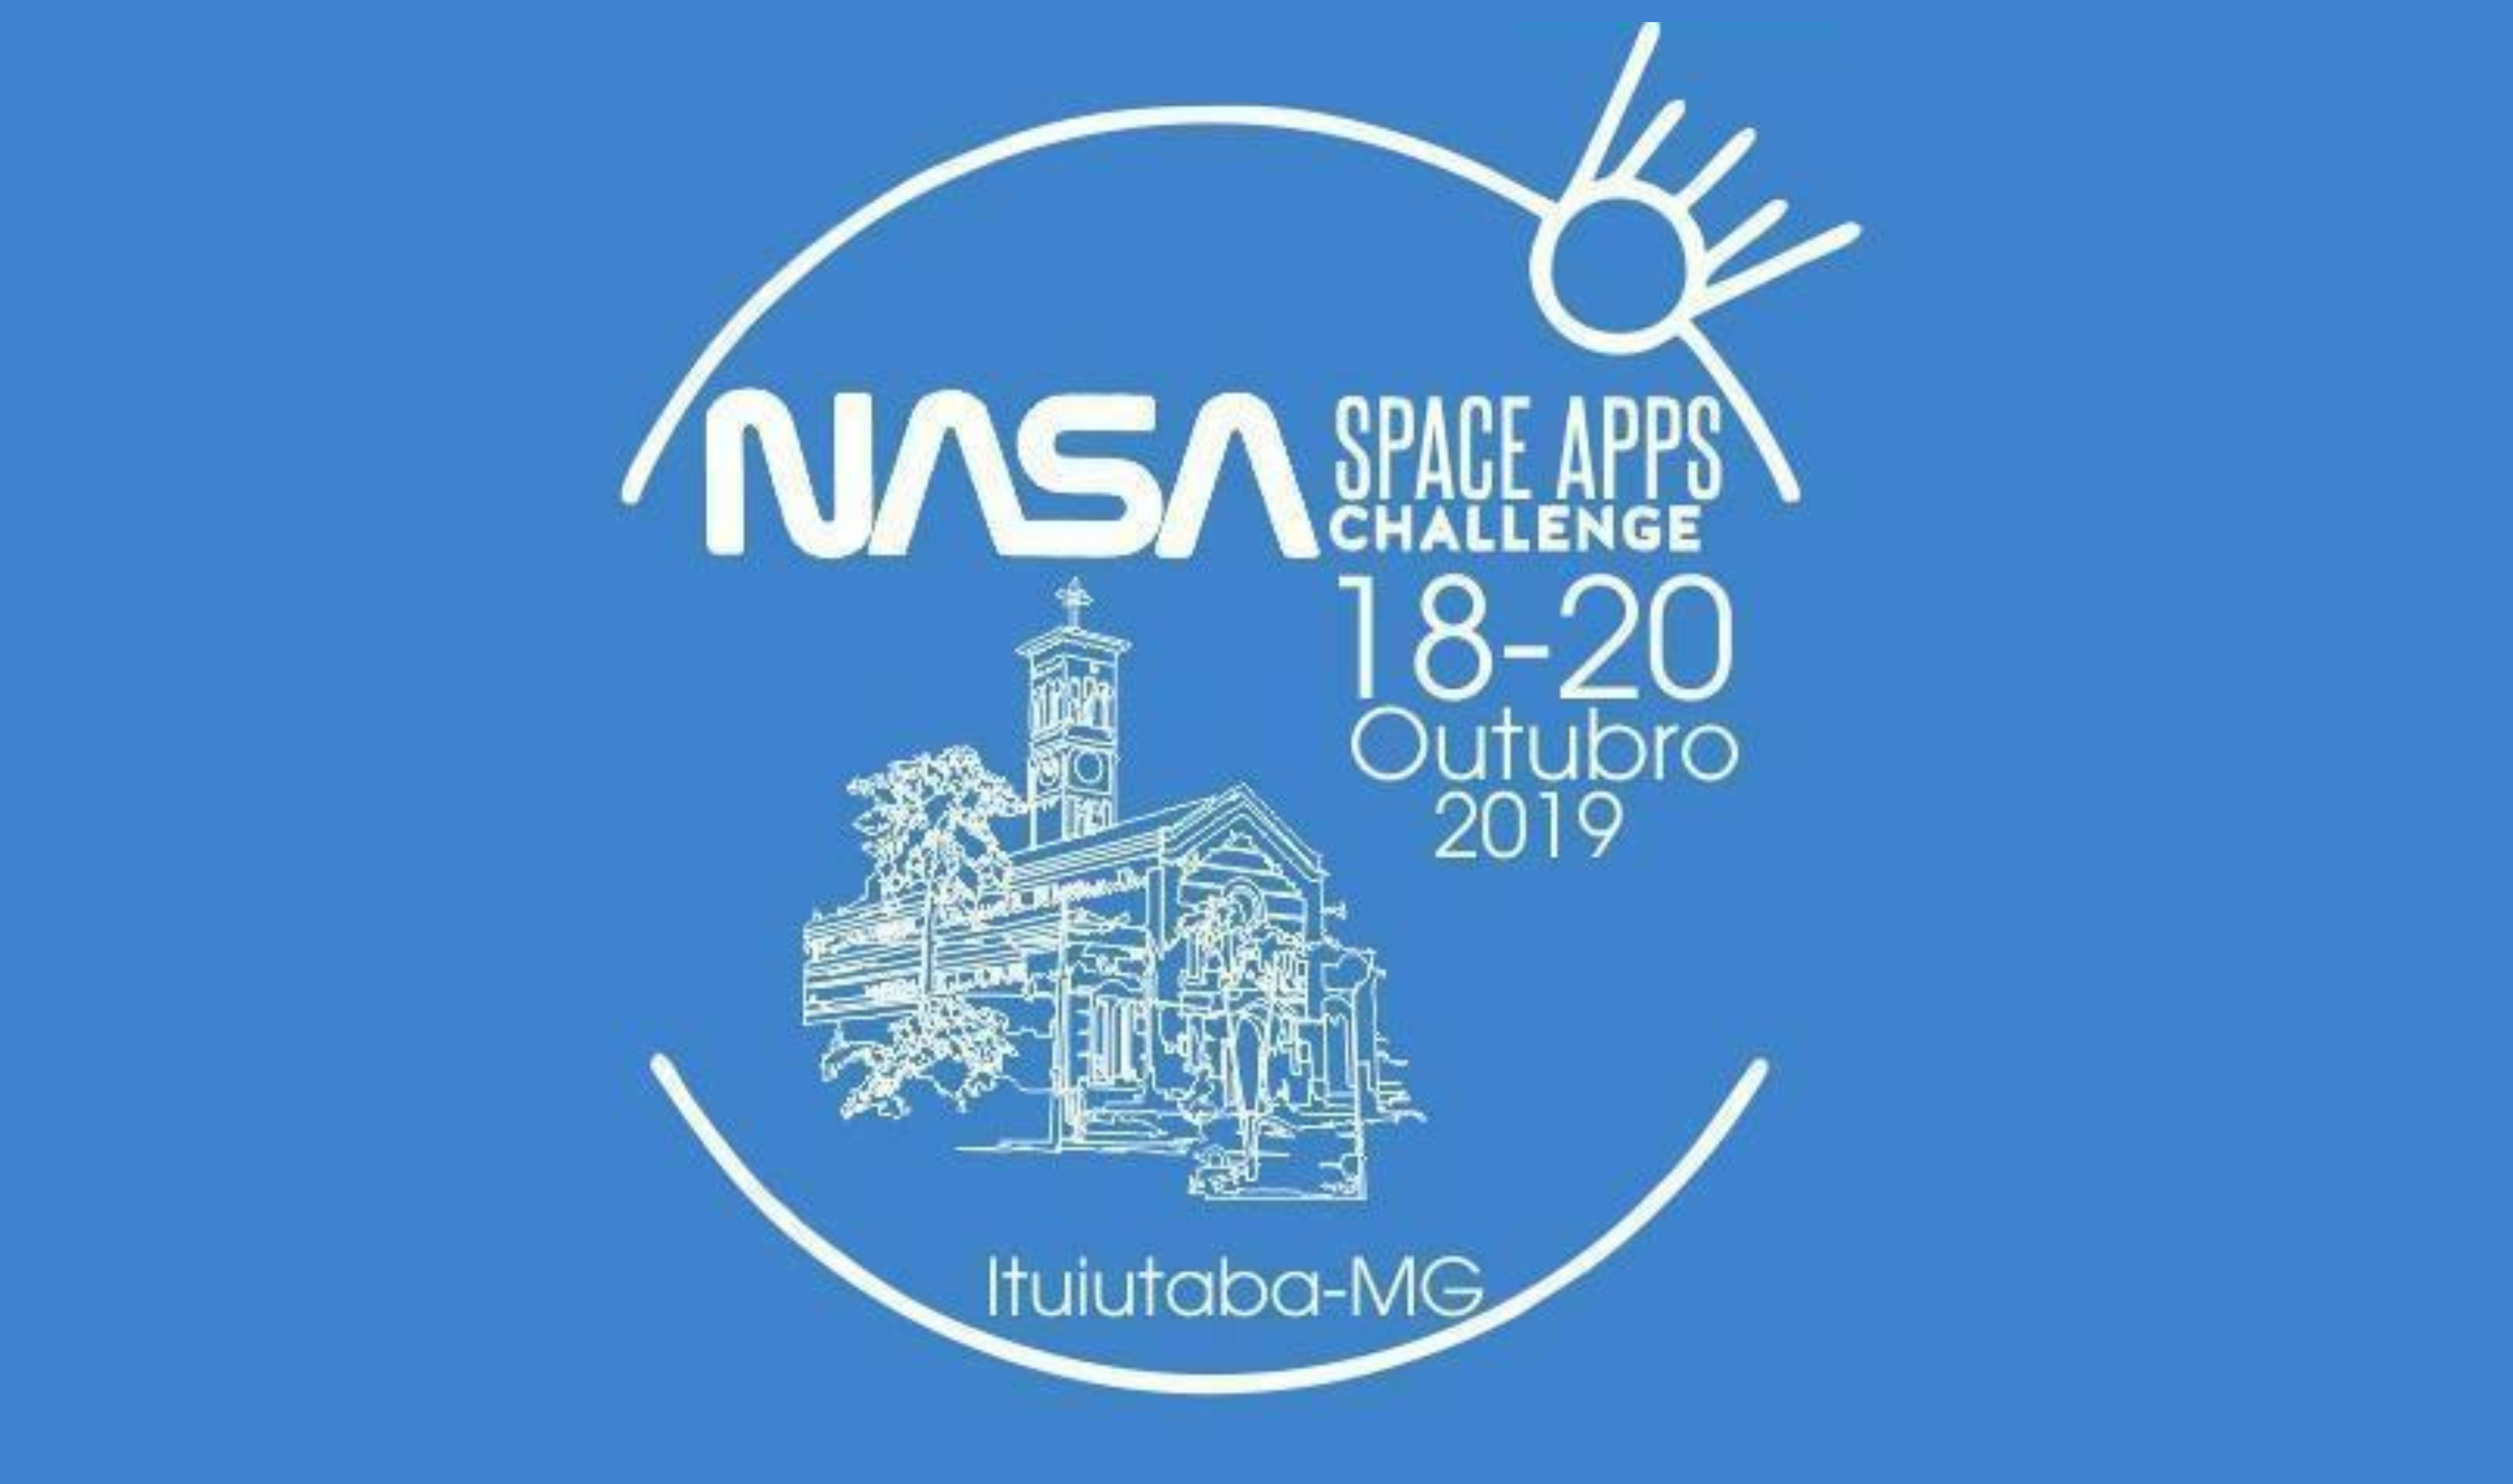 NASA Space Apps Challenge Ituiutaba